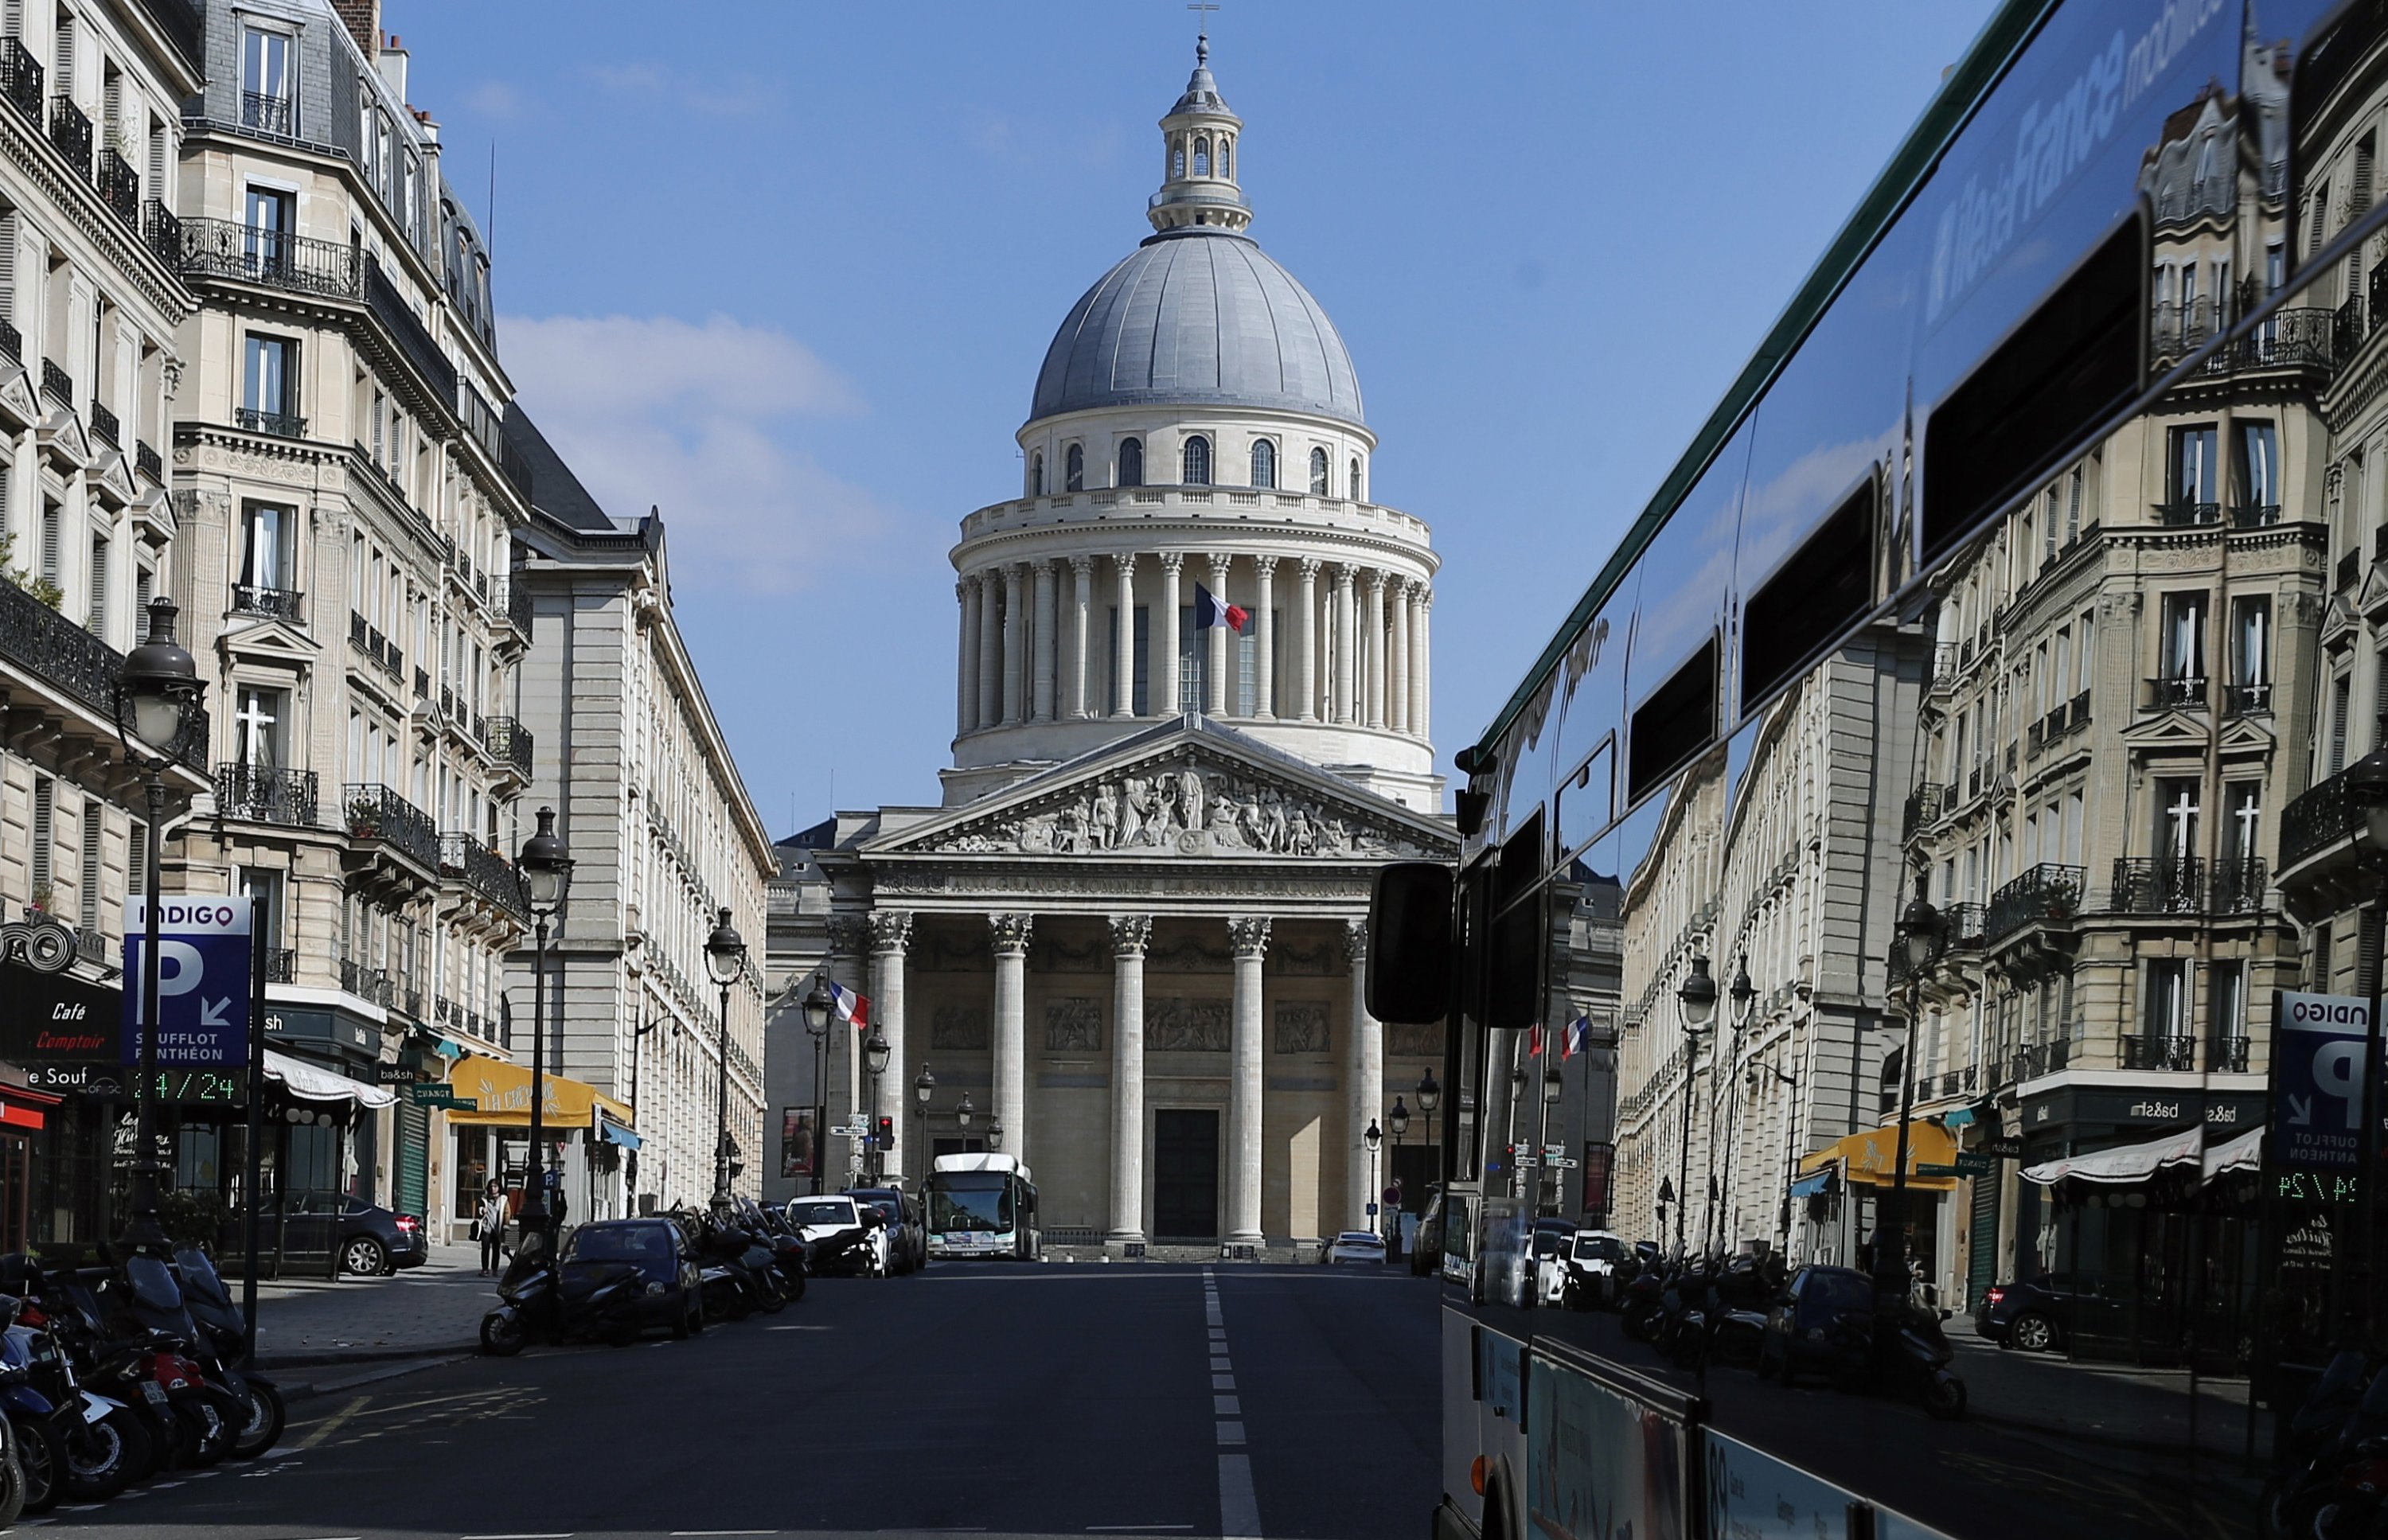 A bus drives to the Pantheon in Paris, France, March 31, 2020. (AP Photo)